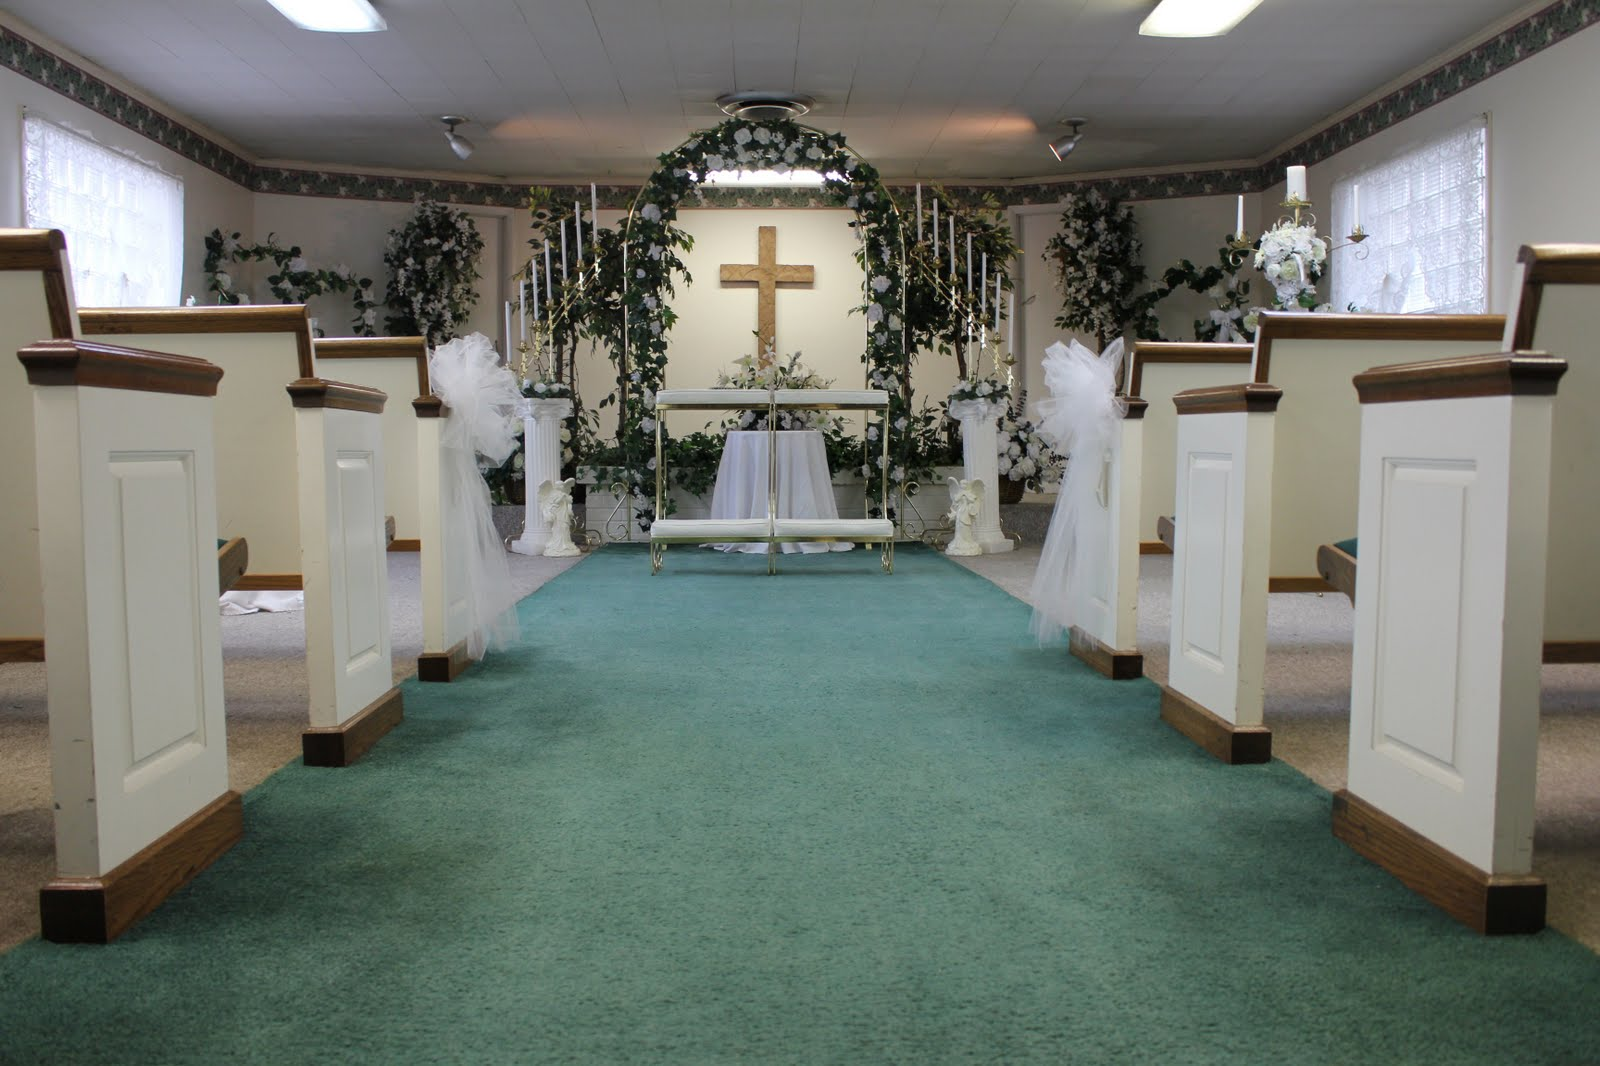 wedding ideas and pictures the wedding chapel gastonia nc 28056